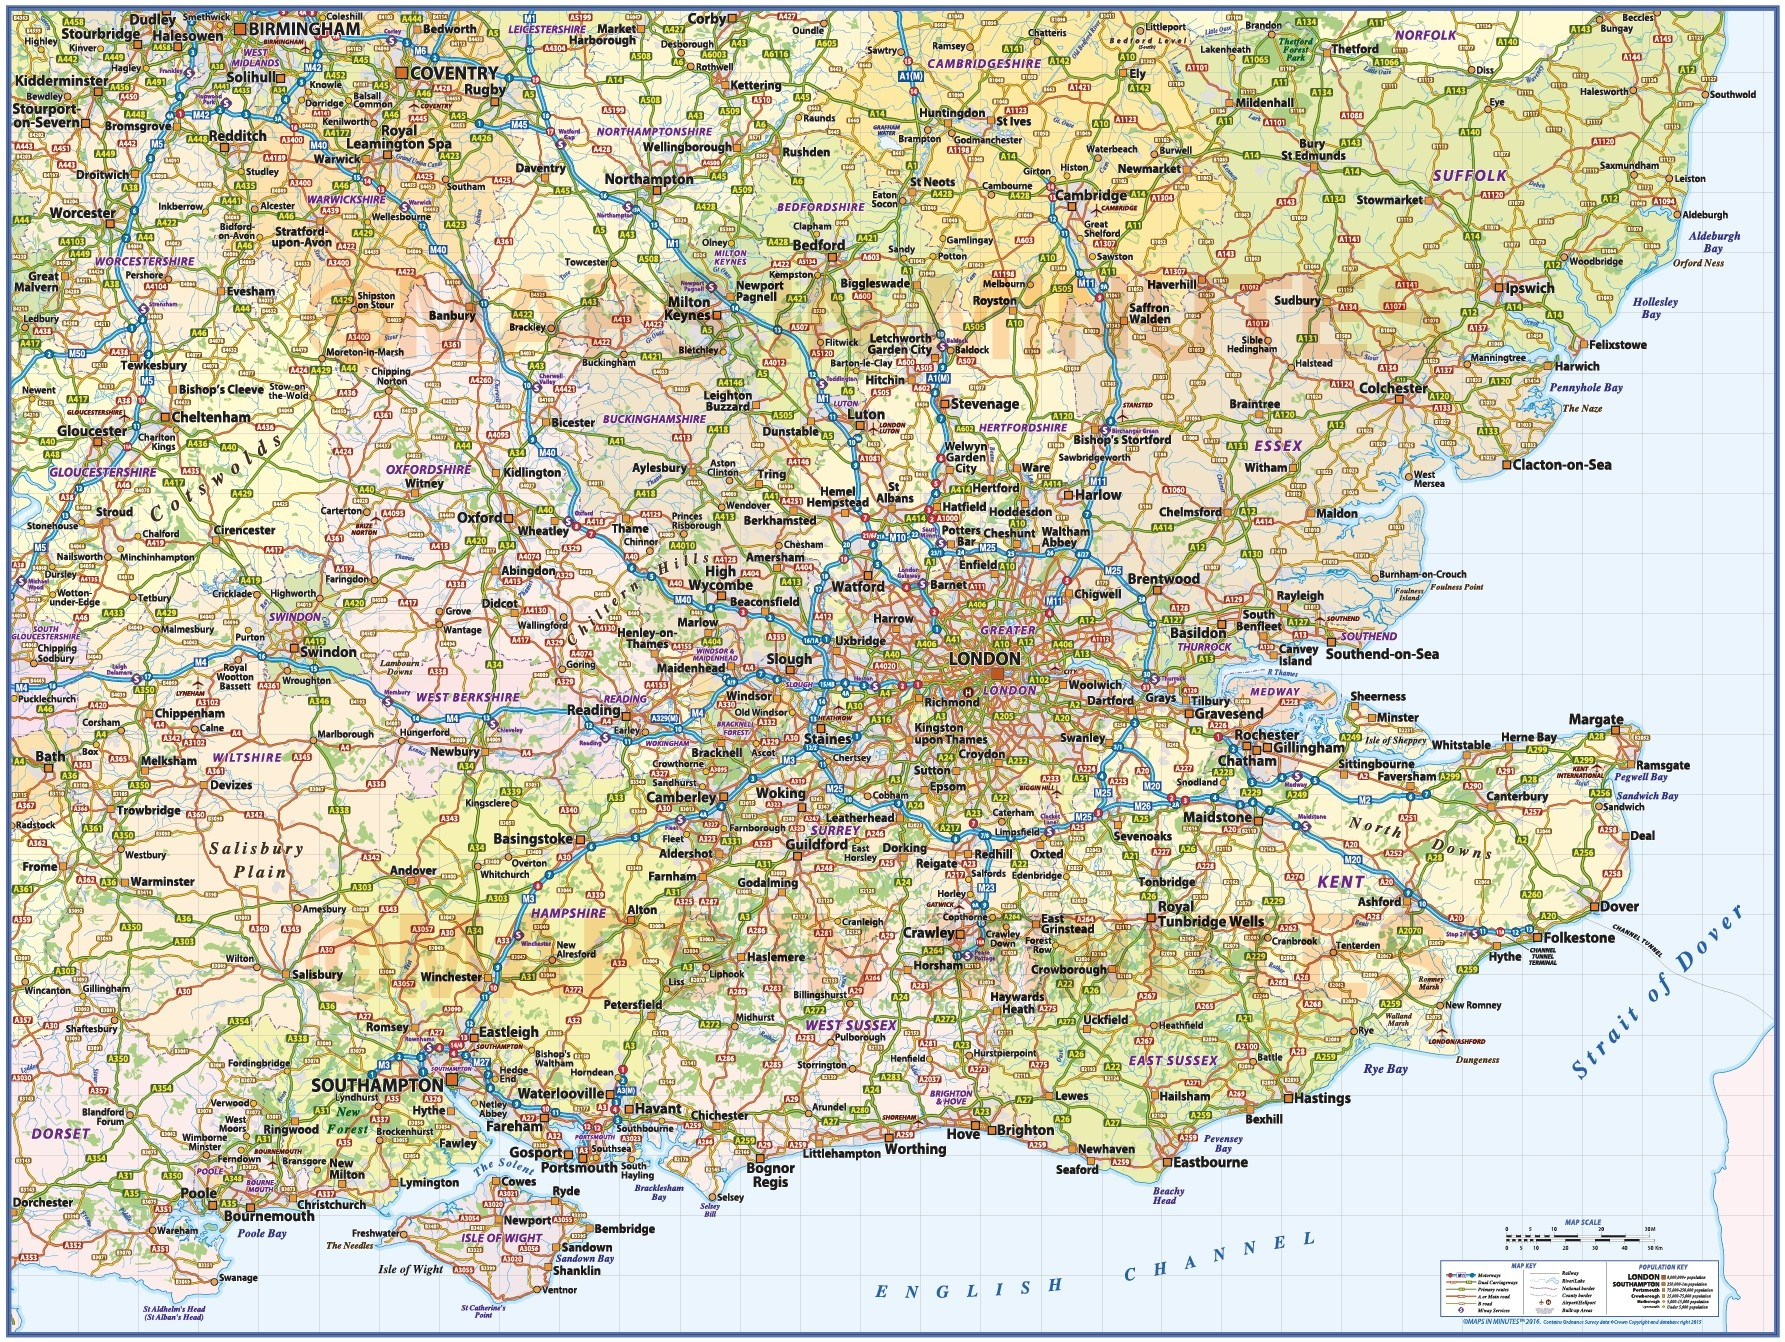 Map Of South East England Counties.South East England 1st Level County Wall Map With Roads And Rail